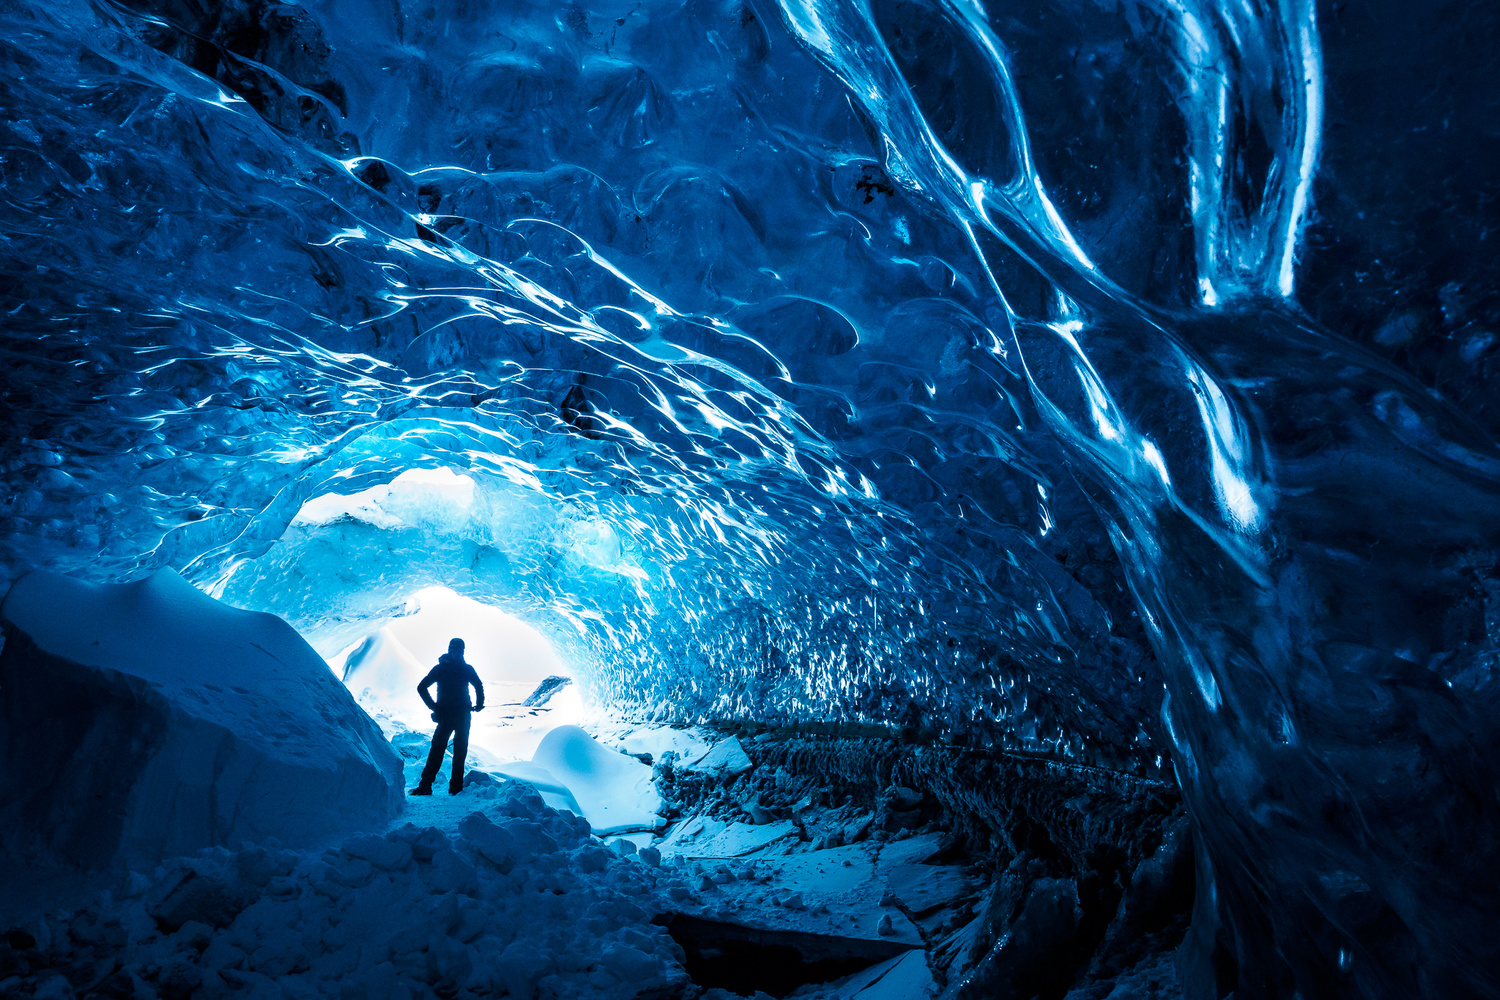 Ice Cave Tube Selfie by Niklas Möller